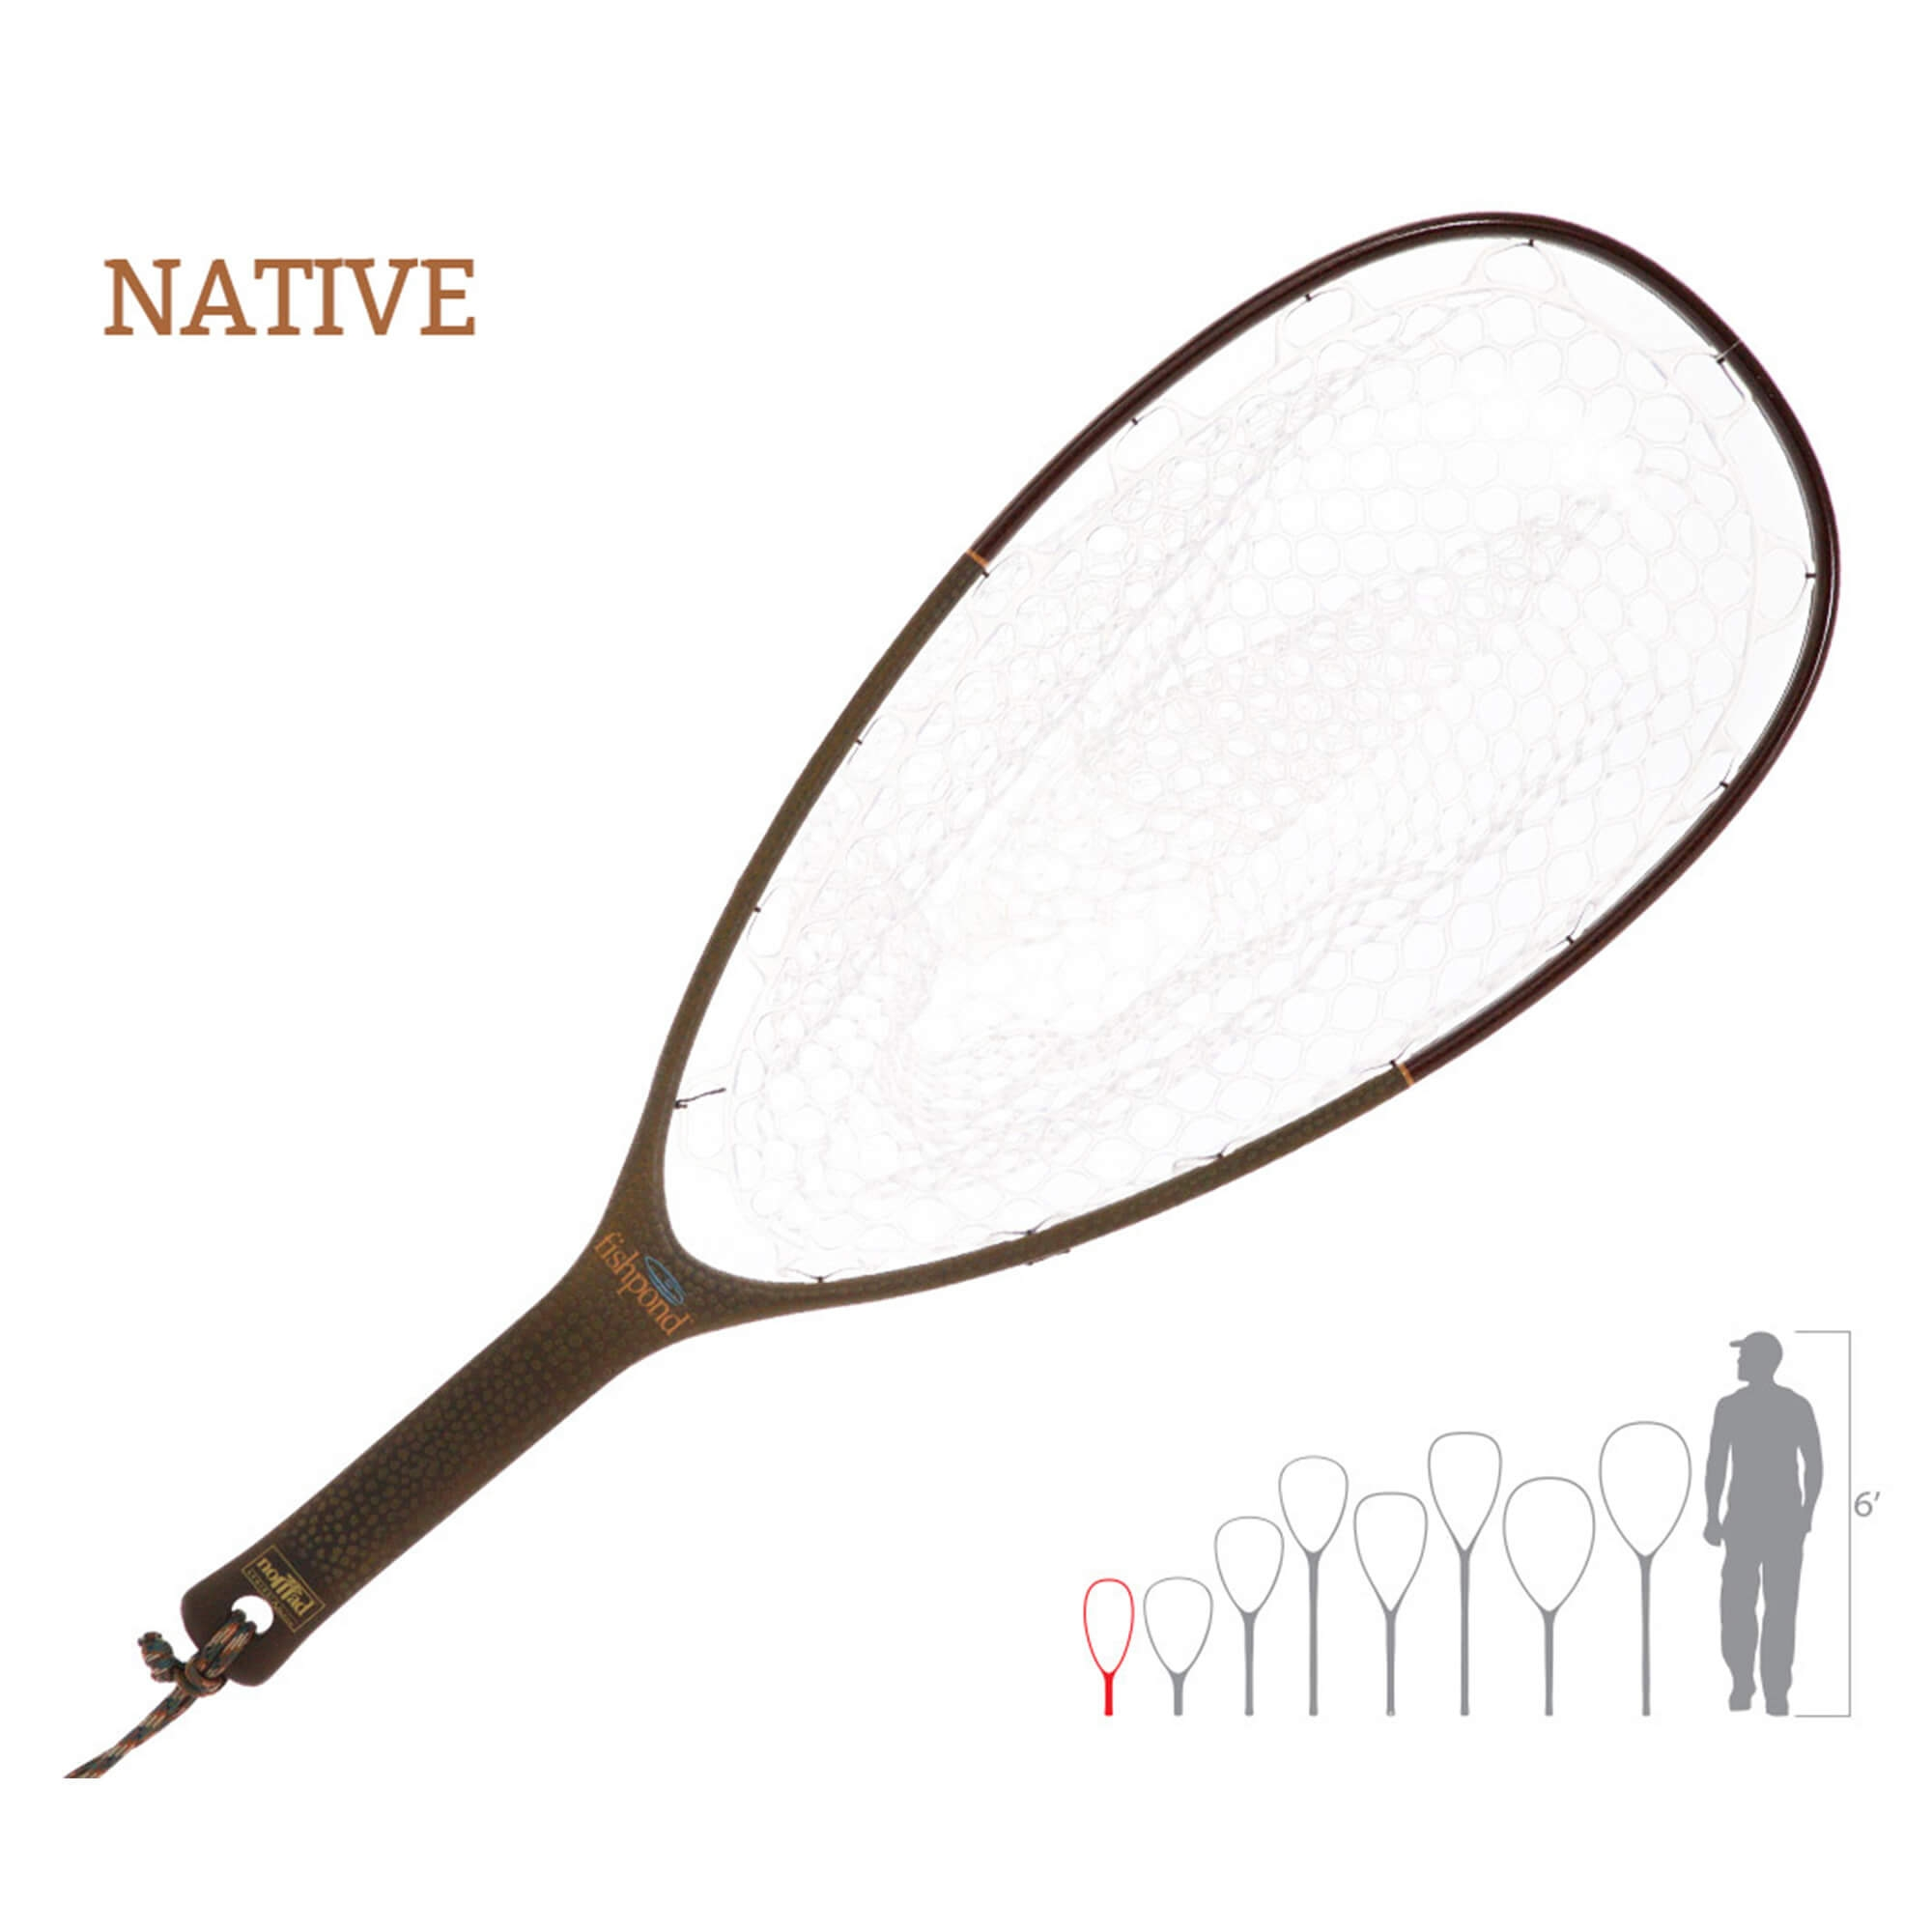 NOMAD NATIVE NET